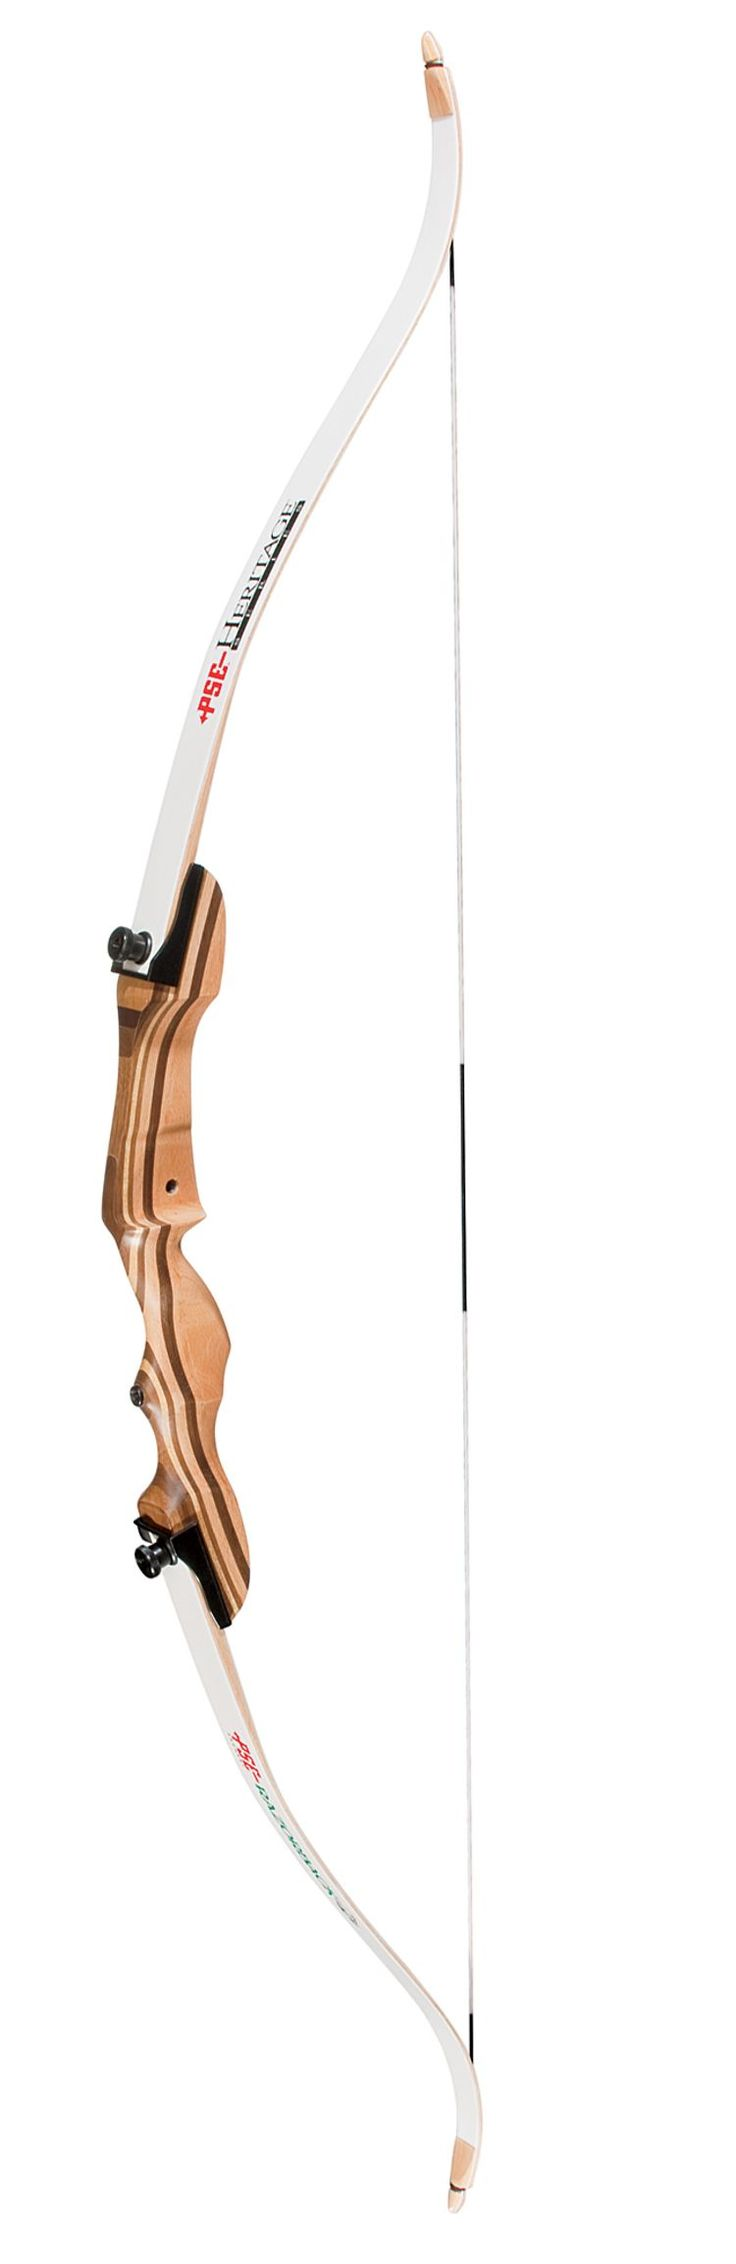 PSE® Archery Razorback or Razorback Jr. Recurve Bow for Youth | Bass Pro Shops #youthhunting #bowhunting